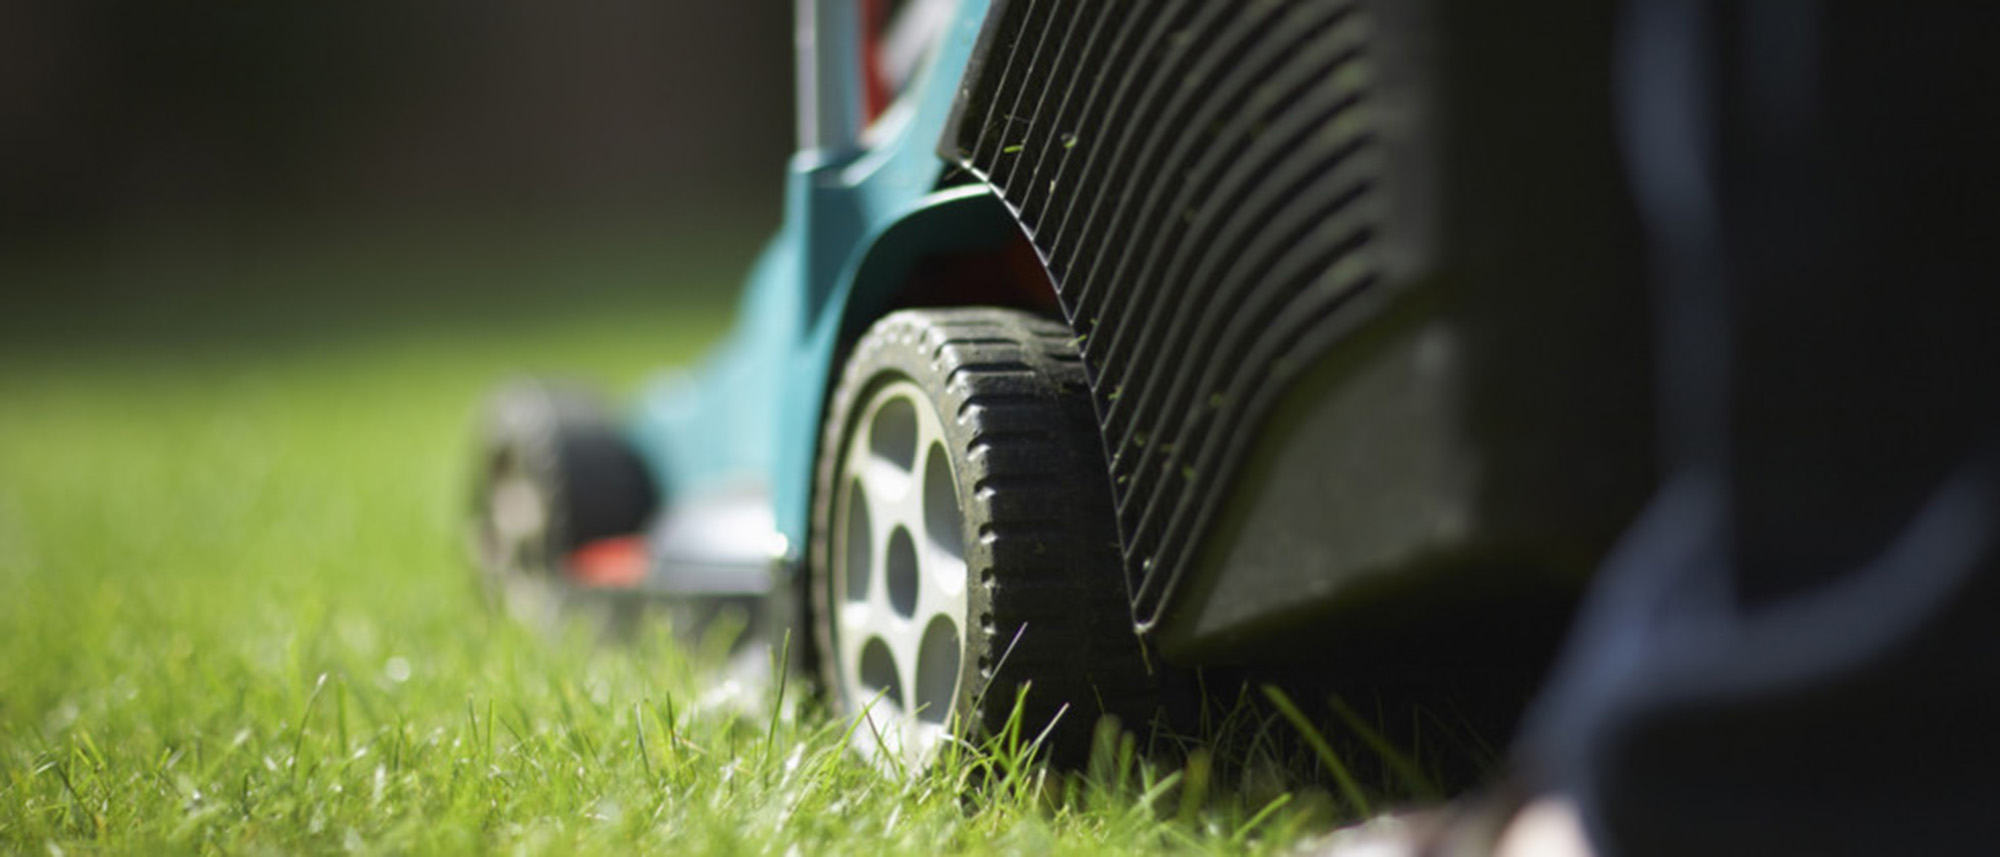 keep lawn clean as part of spring home maintenance